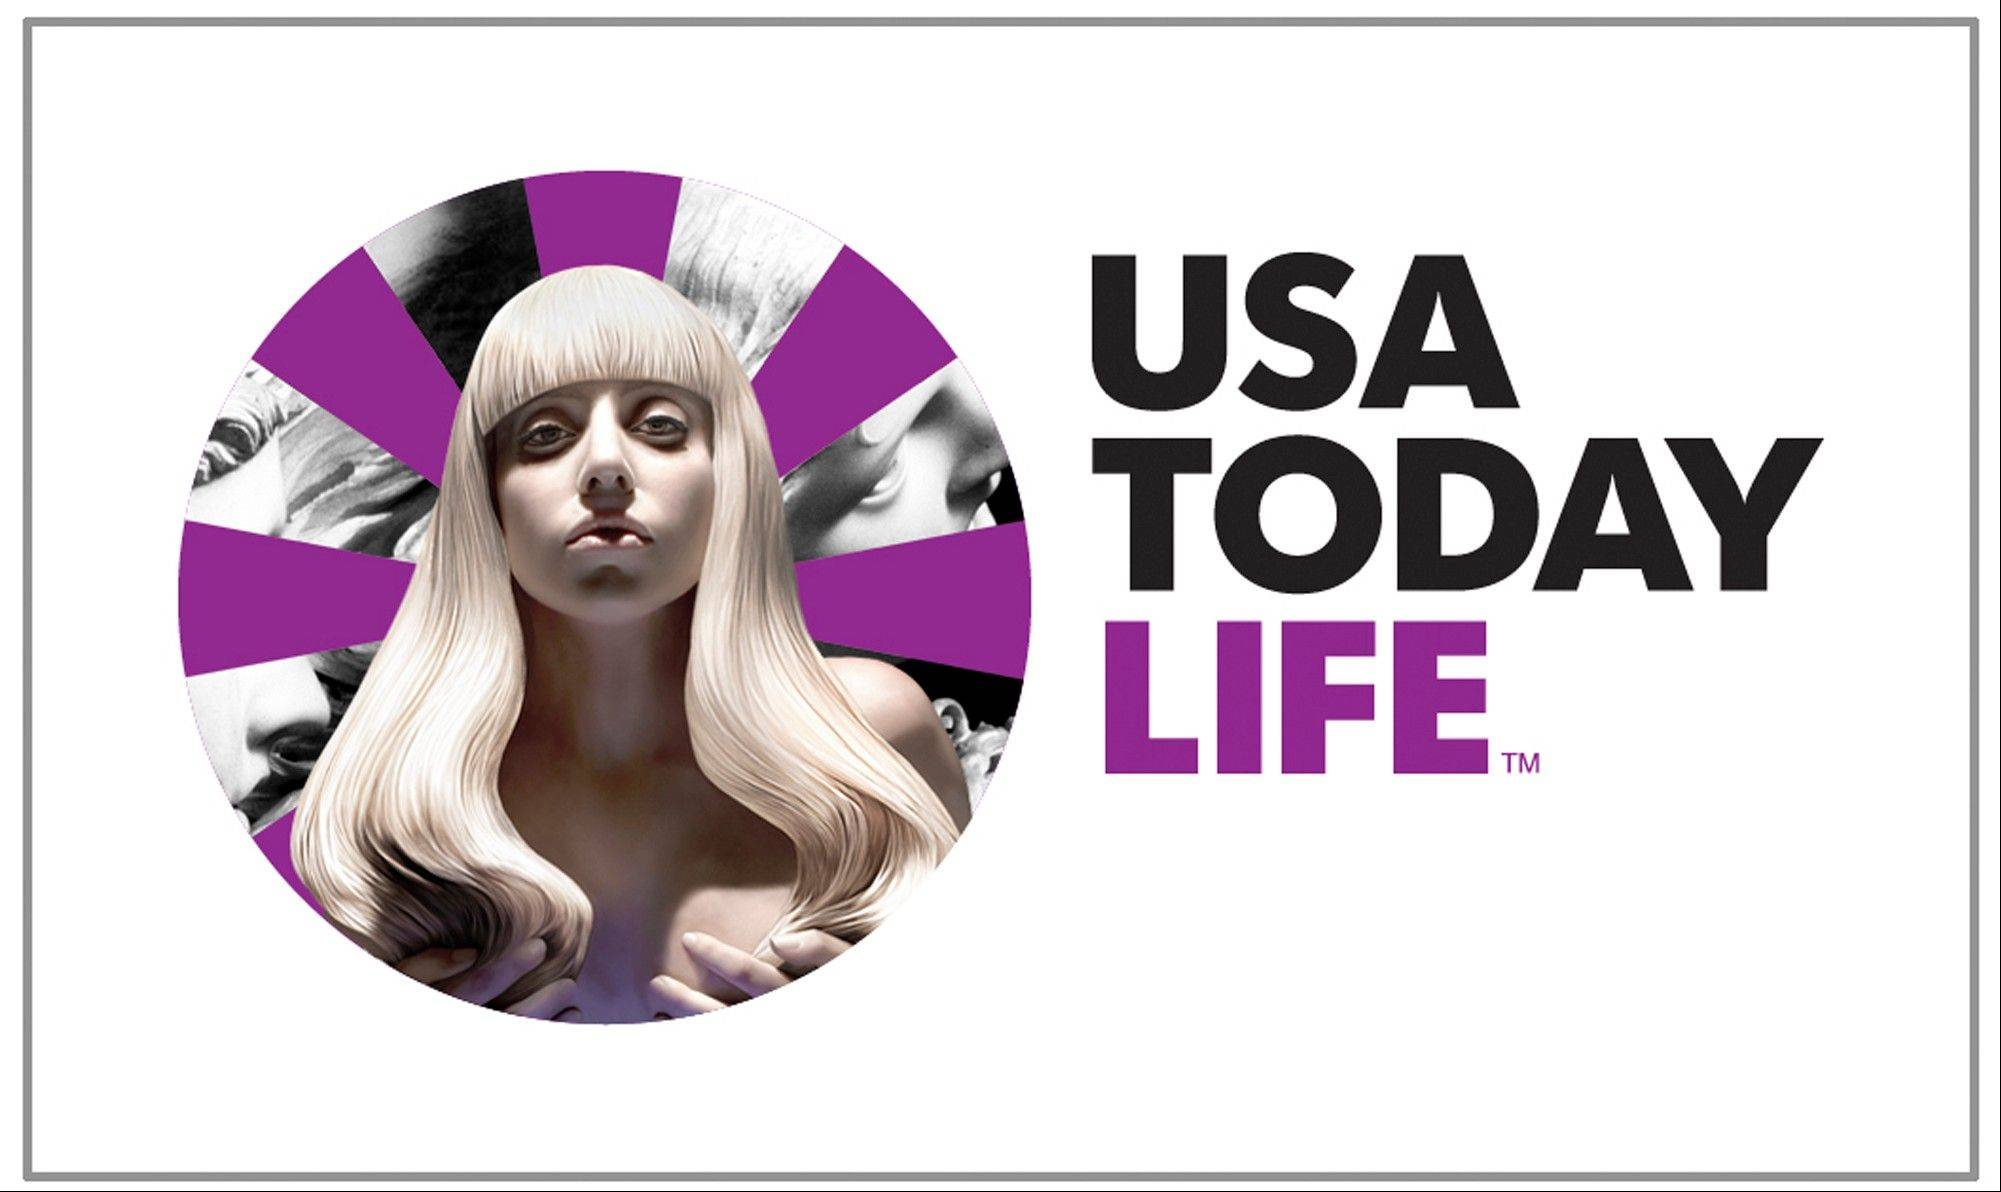 This image released by USA Today shows the logo designed for the newspaper by Lady Gaga. The newspaper says Lady Gaga is the first guest contributor to design a logo for the newspaper.